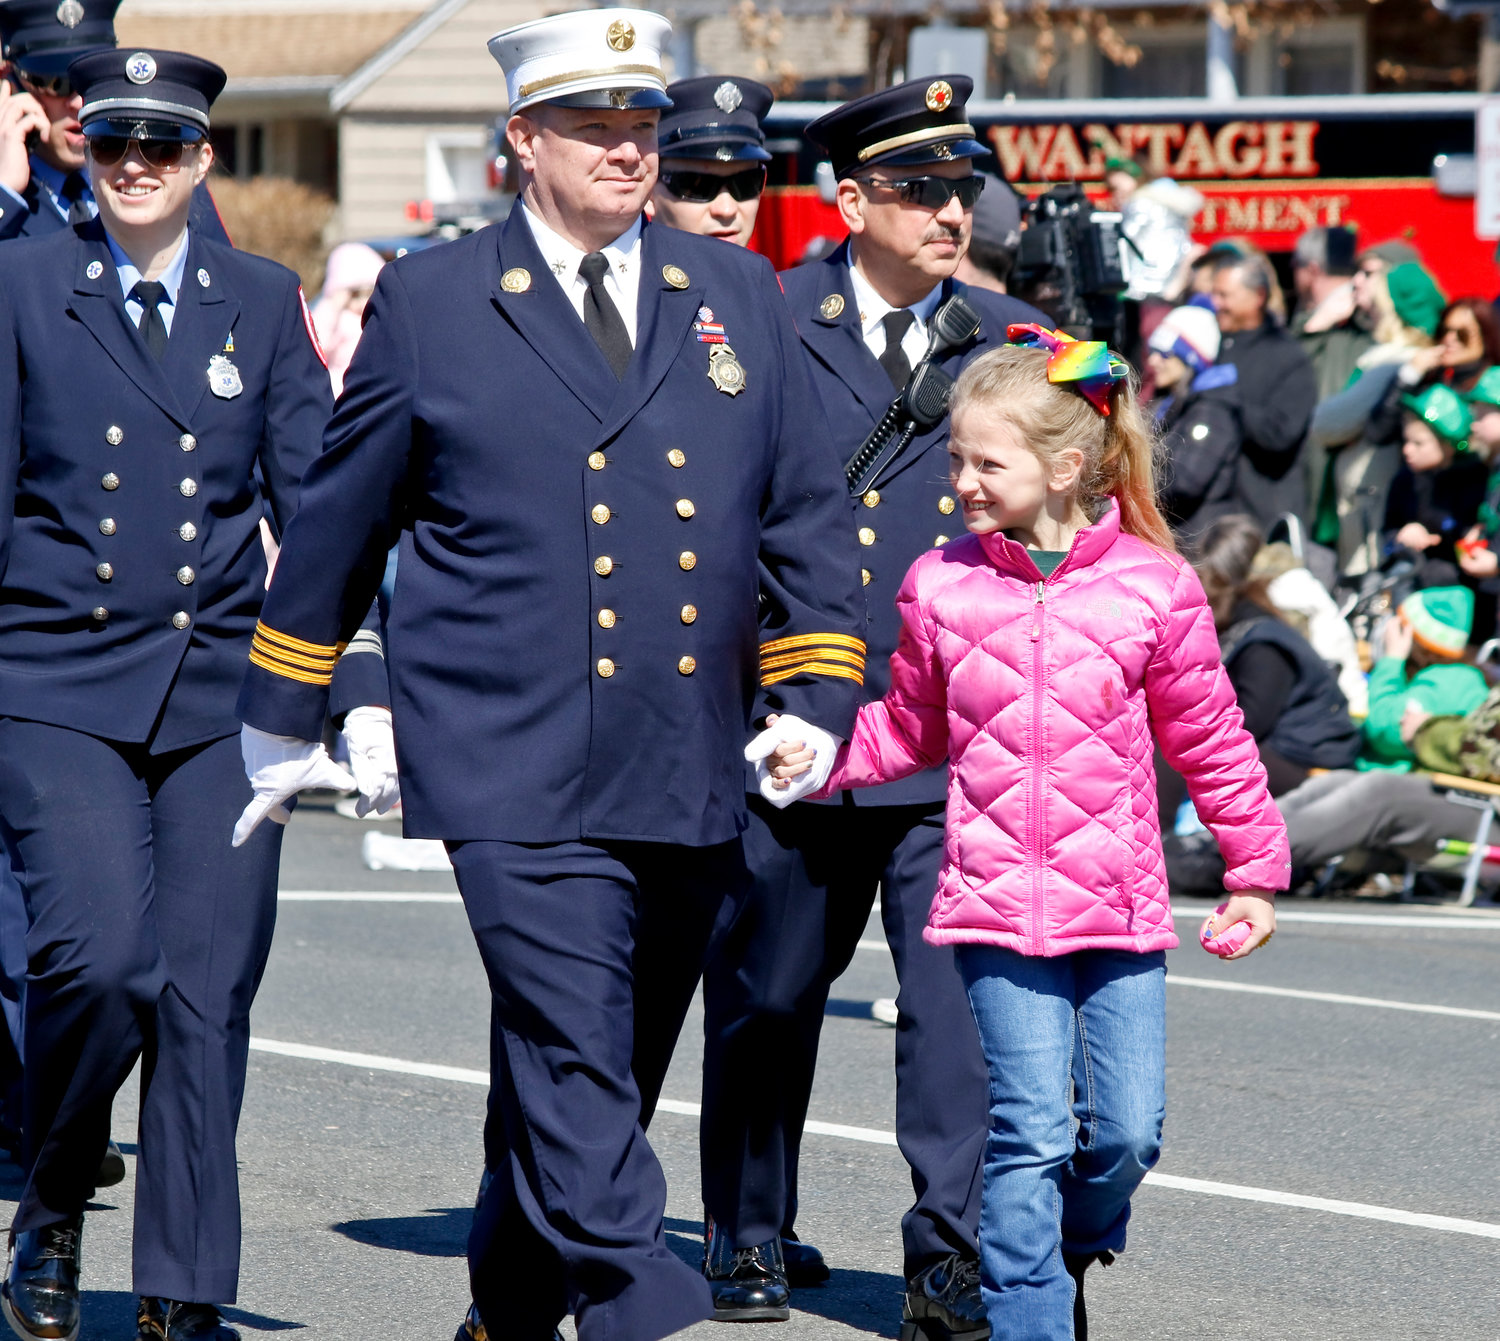 Seaford Fire Department Assistant Chief Thomas DeHaan marched with his daughter Lauren.